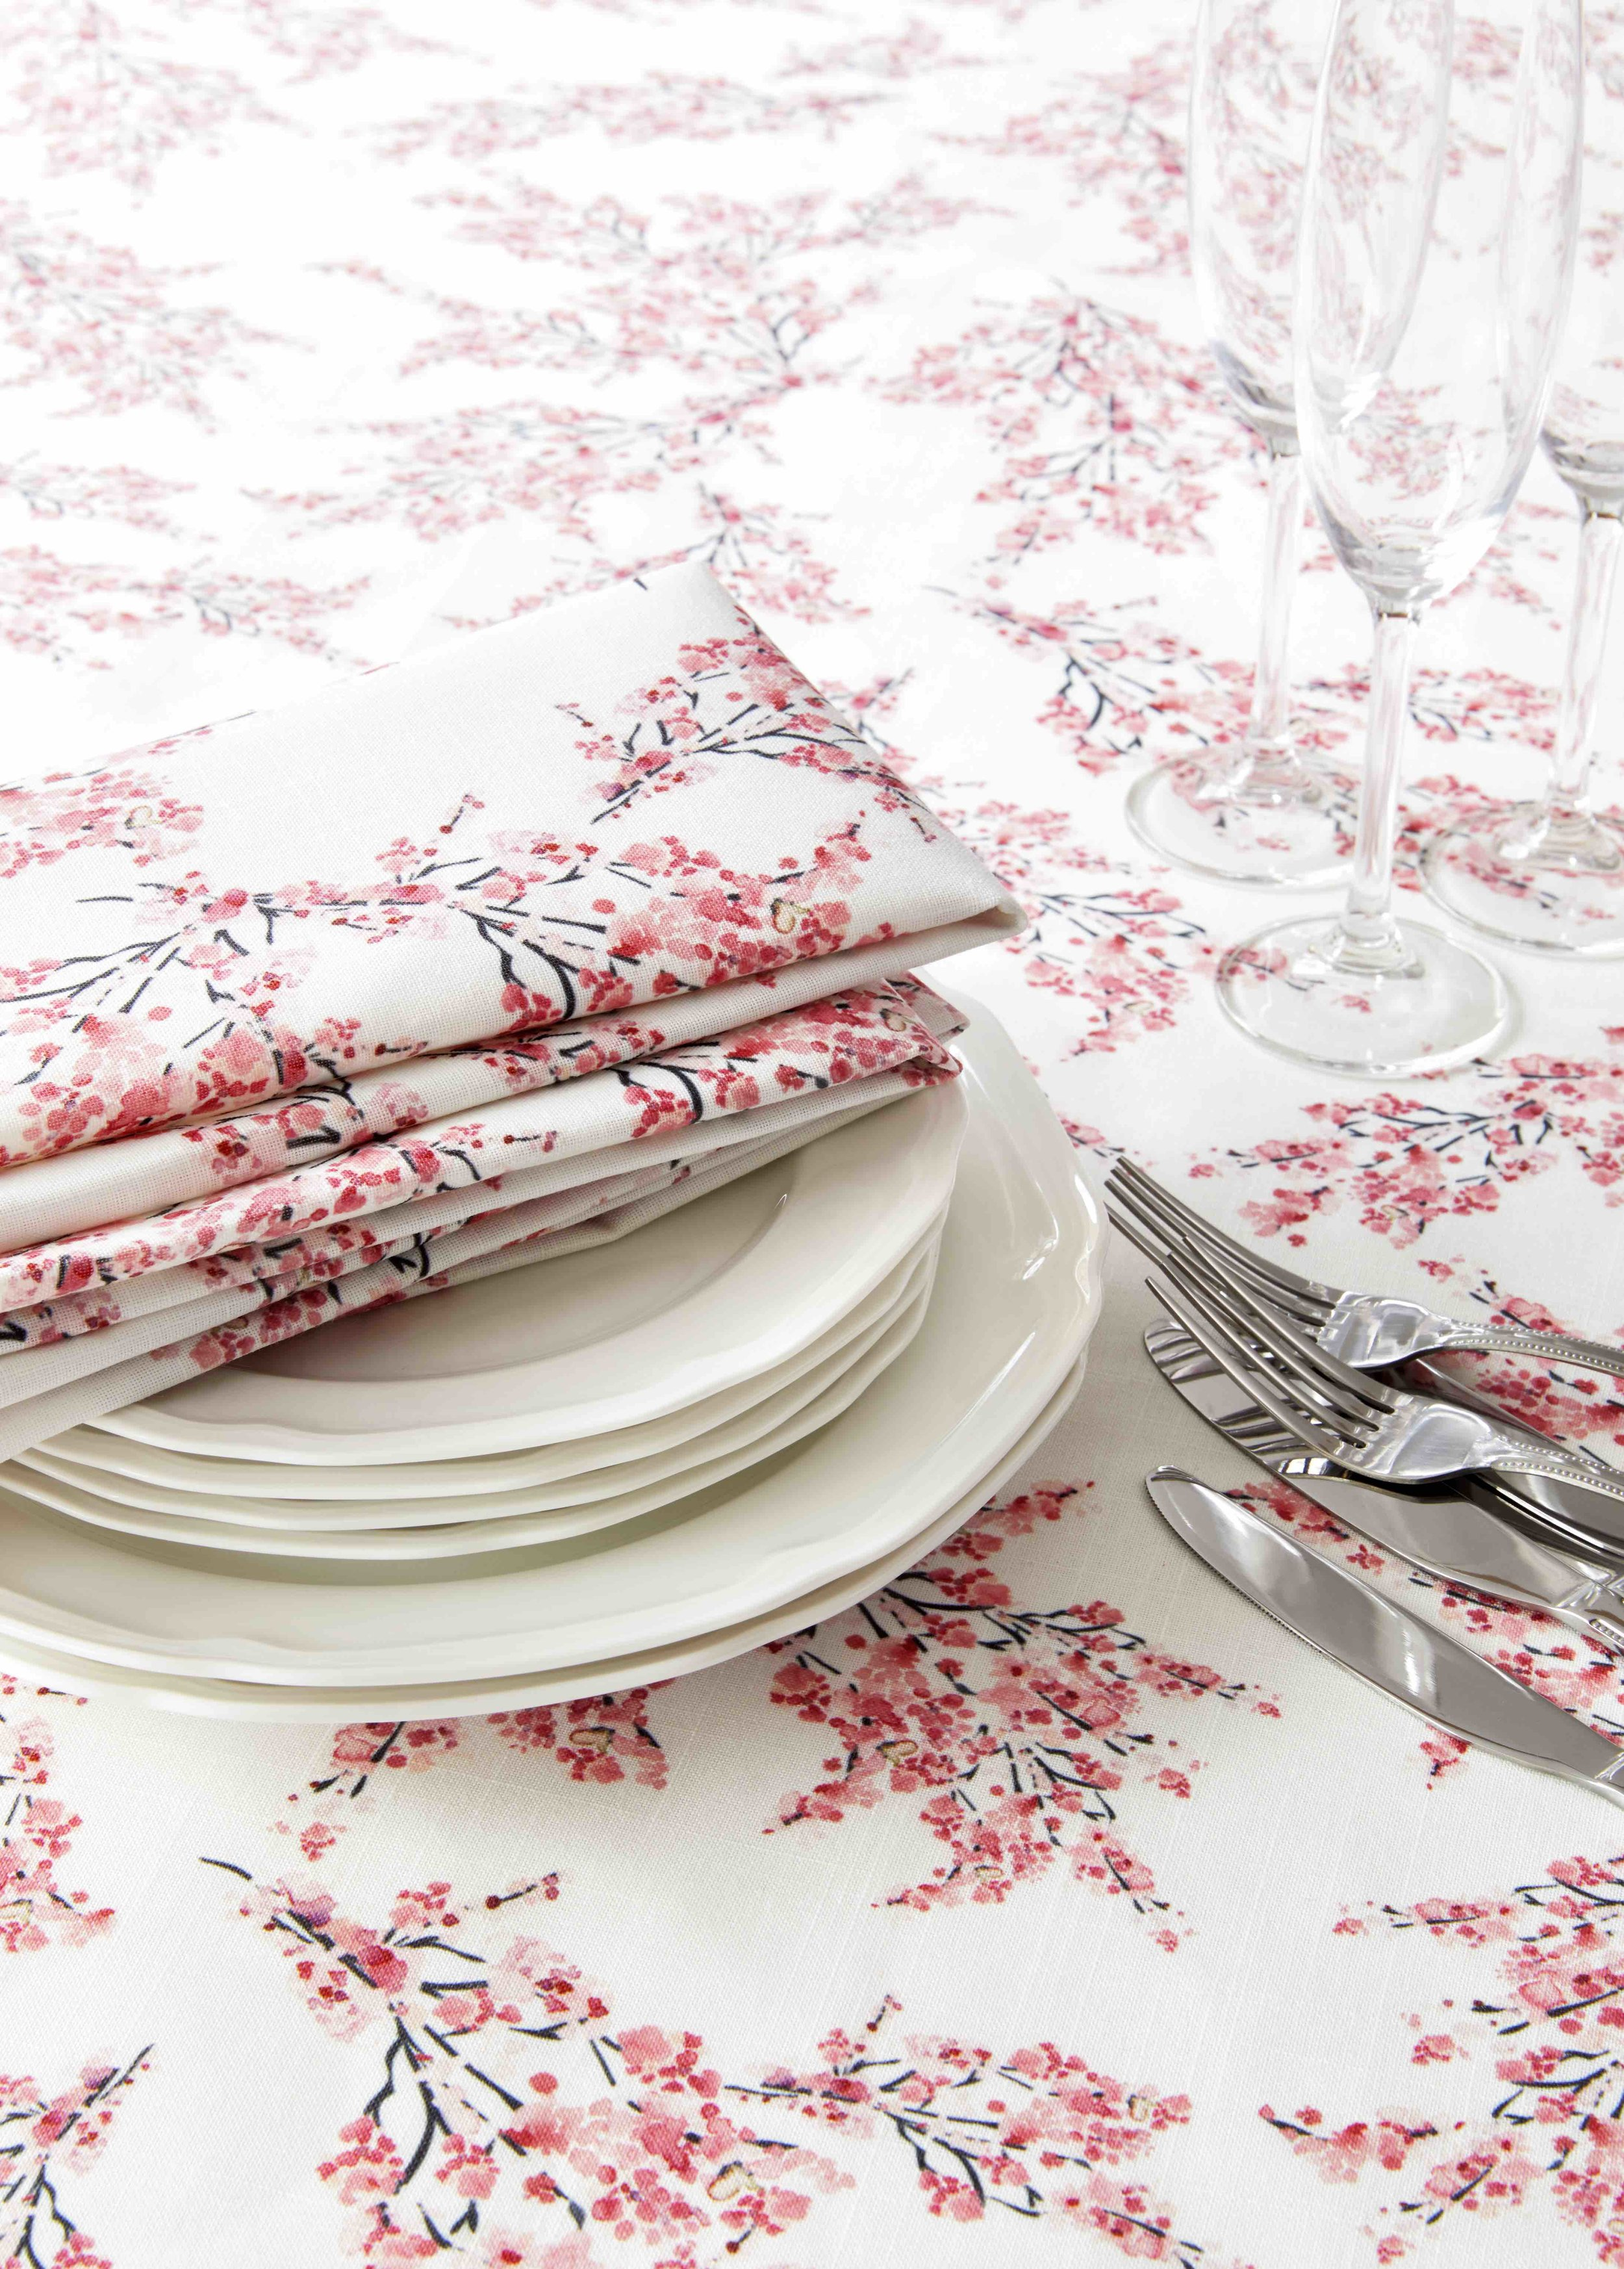 3. Cherry Blossom Napkin and Tablecloth